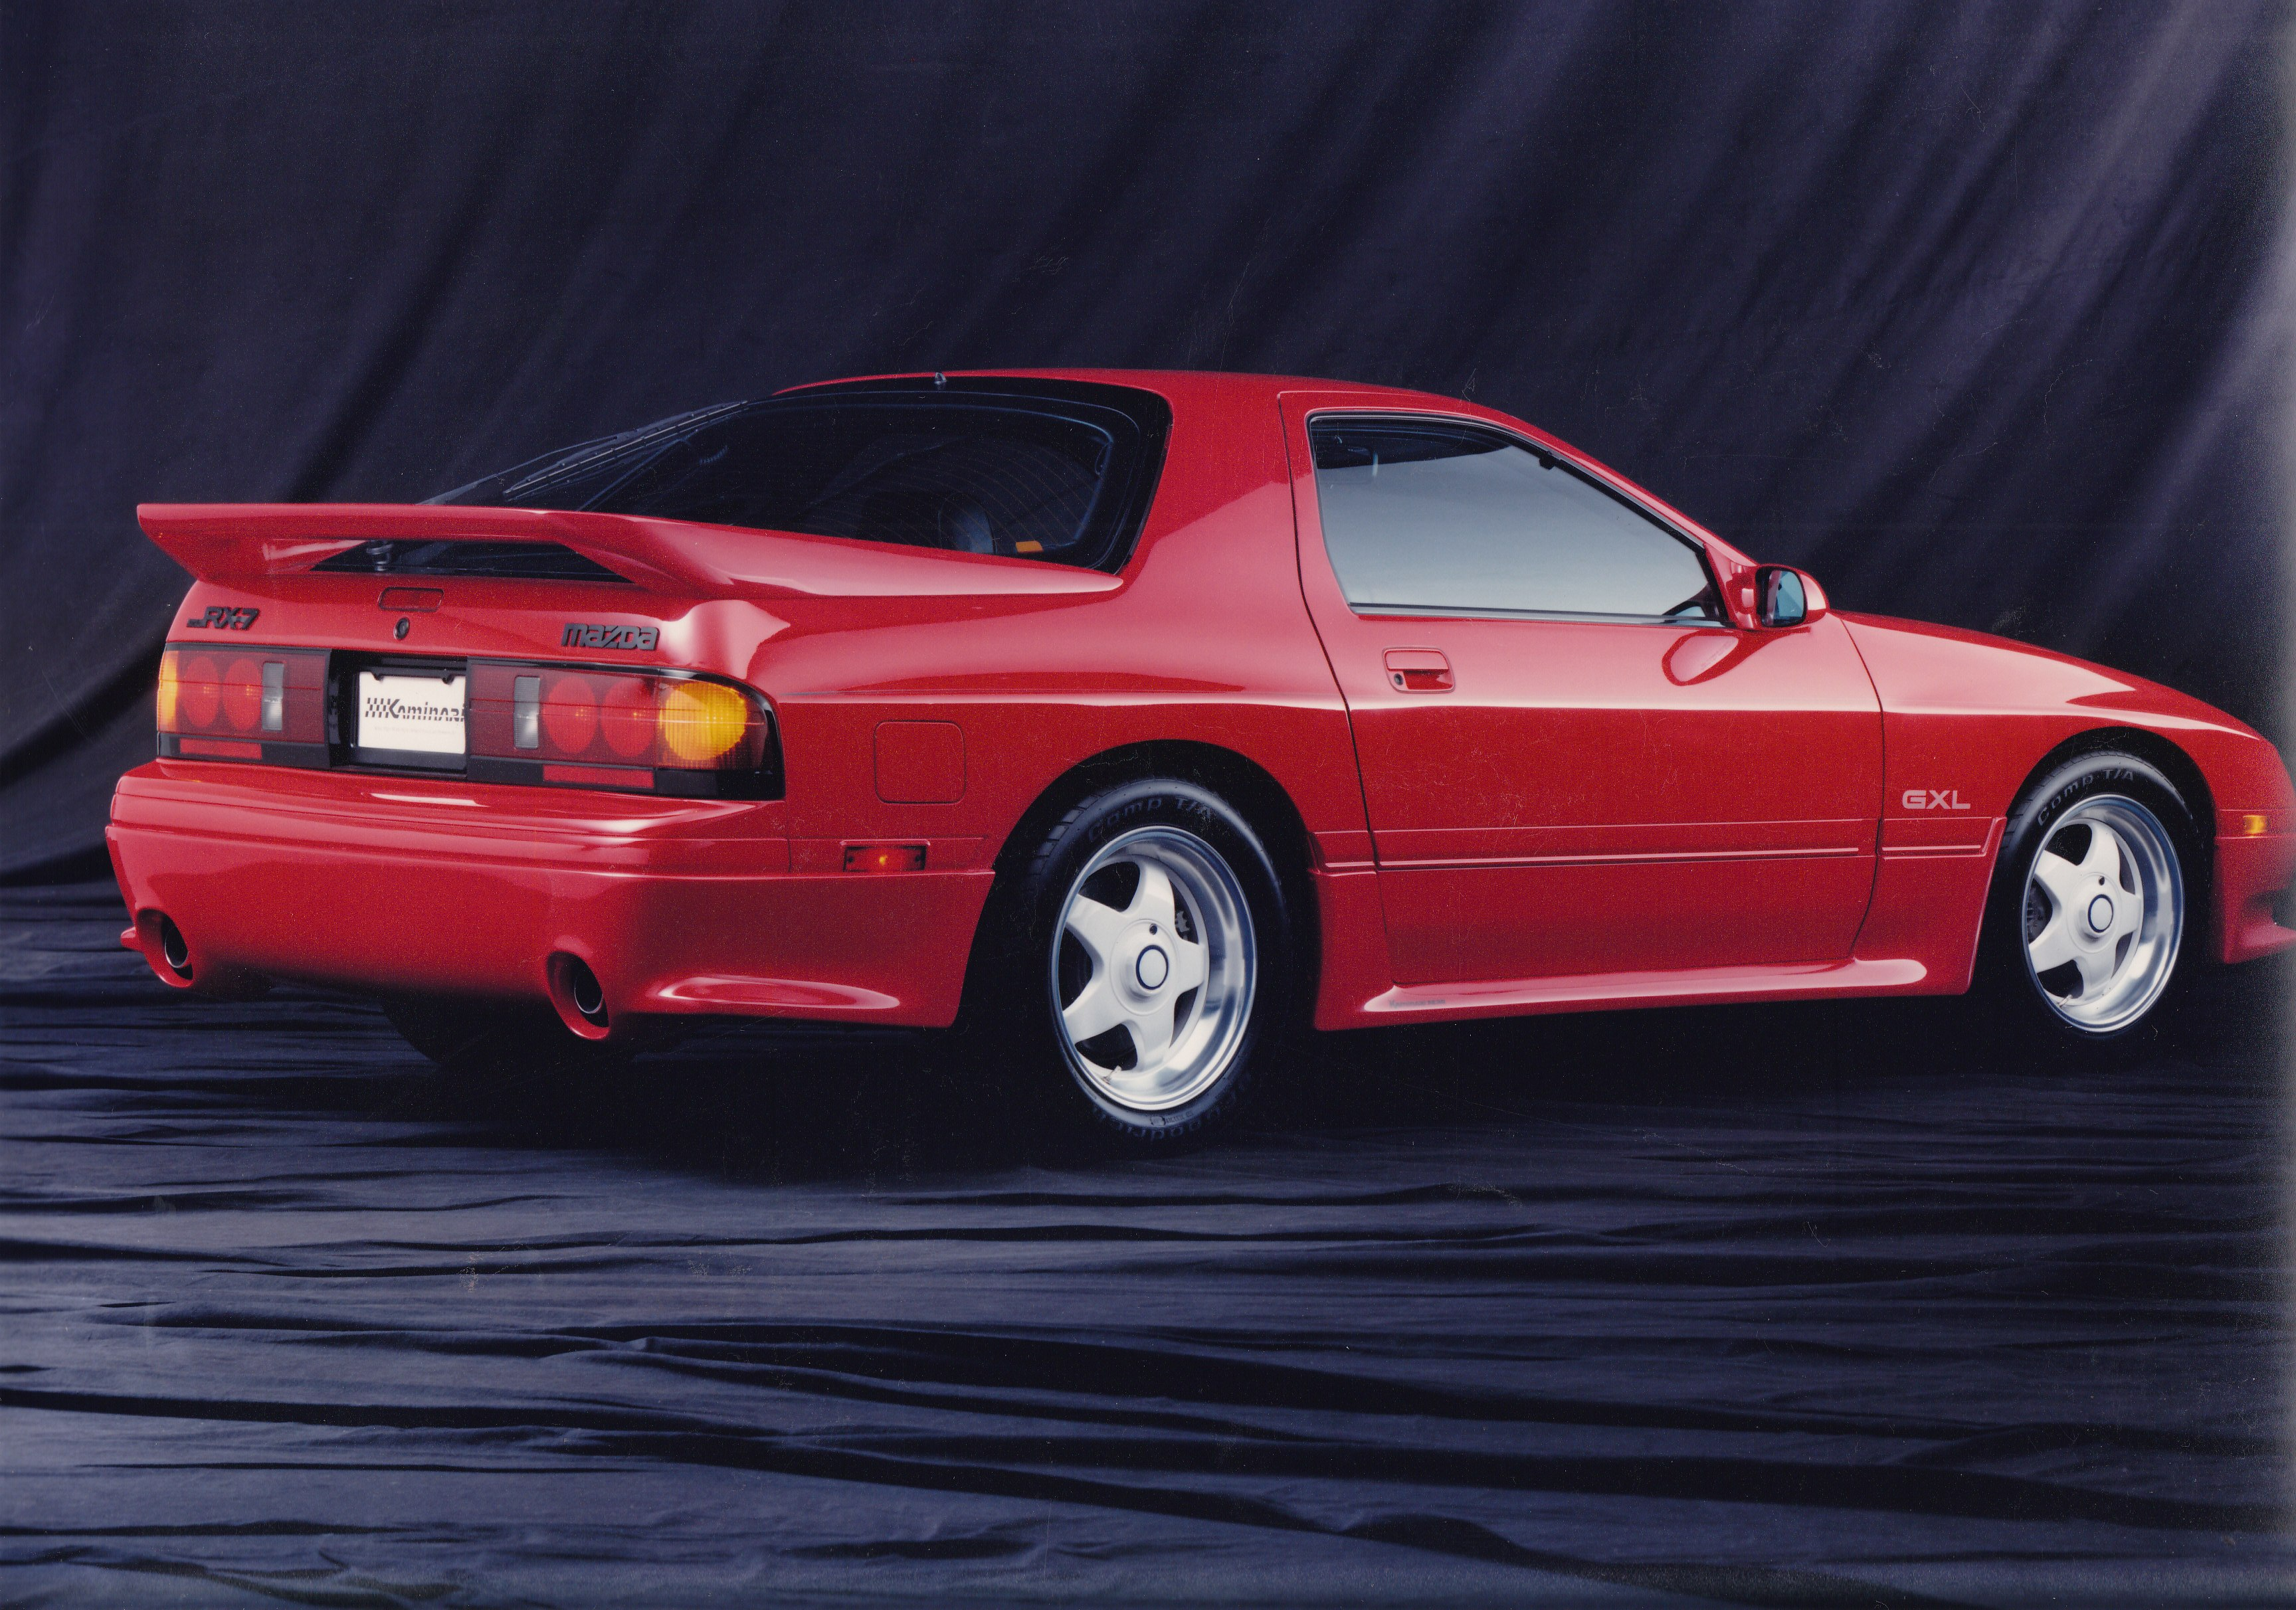 Mazda Increased The Power Of Both The Naturally Aspirated And Turbocharged  Models Of The RX 7 For The Series 5. In Naturally Aspirated Form The Car  Produced ...